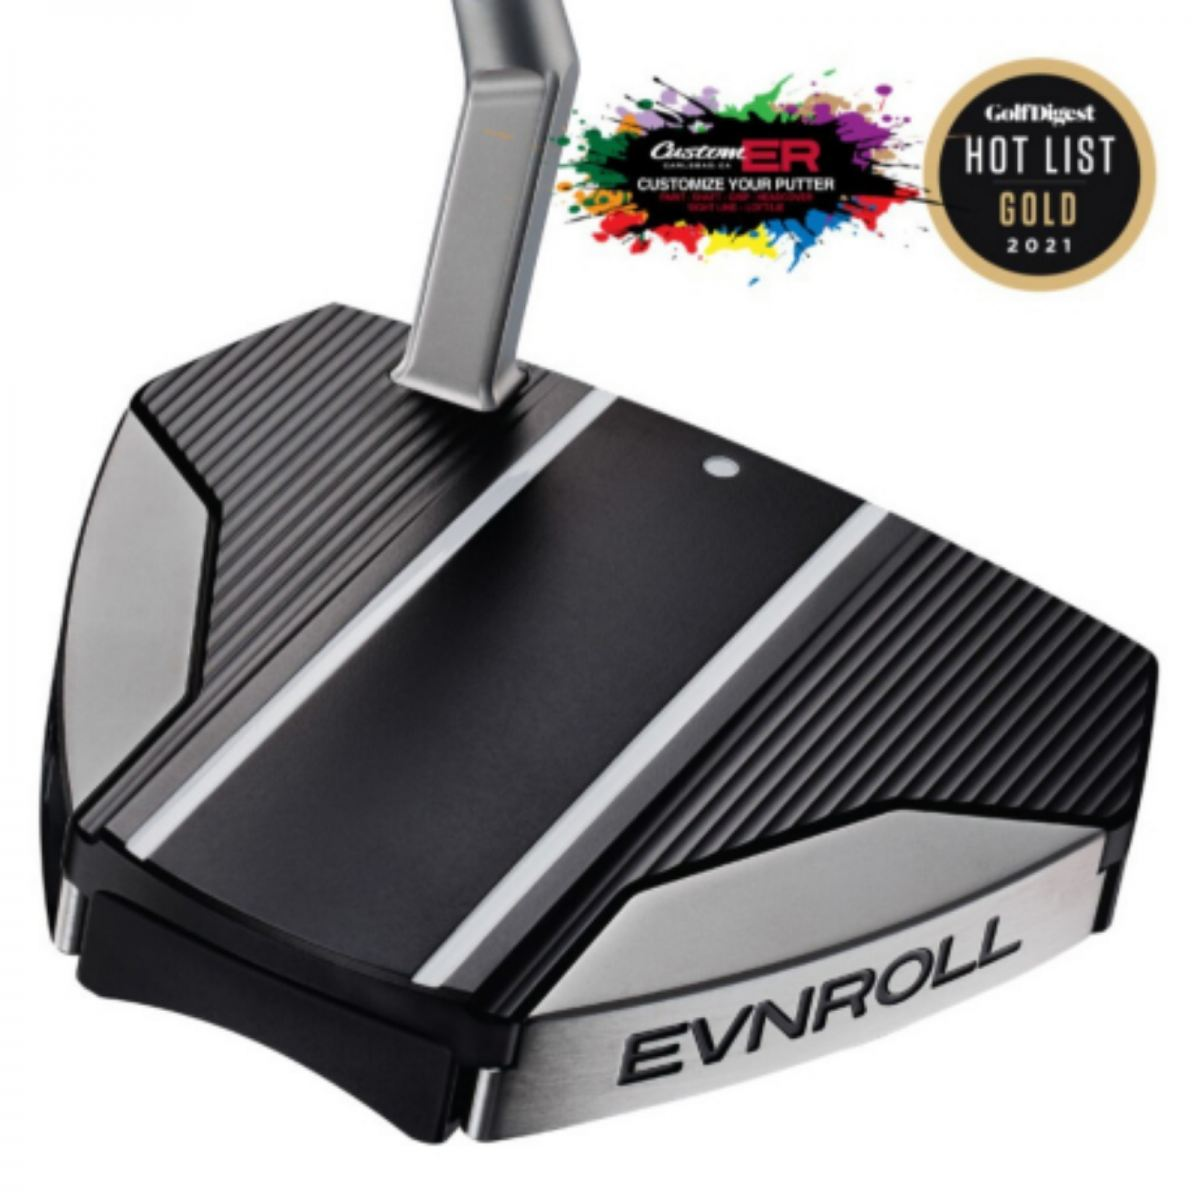 New 2021/2022 Evenroll Putters are here at the No 1 Golf Boutique V K Golf ECommerce Platform now.  Promo Mco 3.0 Phase 1 & 2 deal below with FREE 1 Dozen Titleist PRO V1 Golf Ball and Guaranteed Free Zero Cost delivery within Peninsular Malaysia only